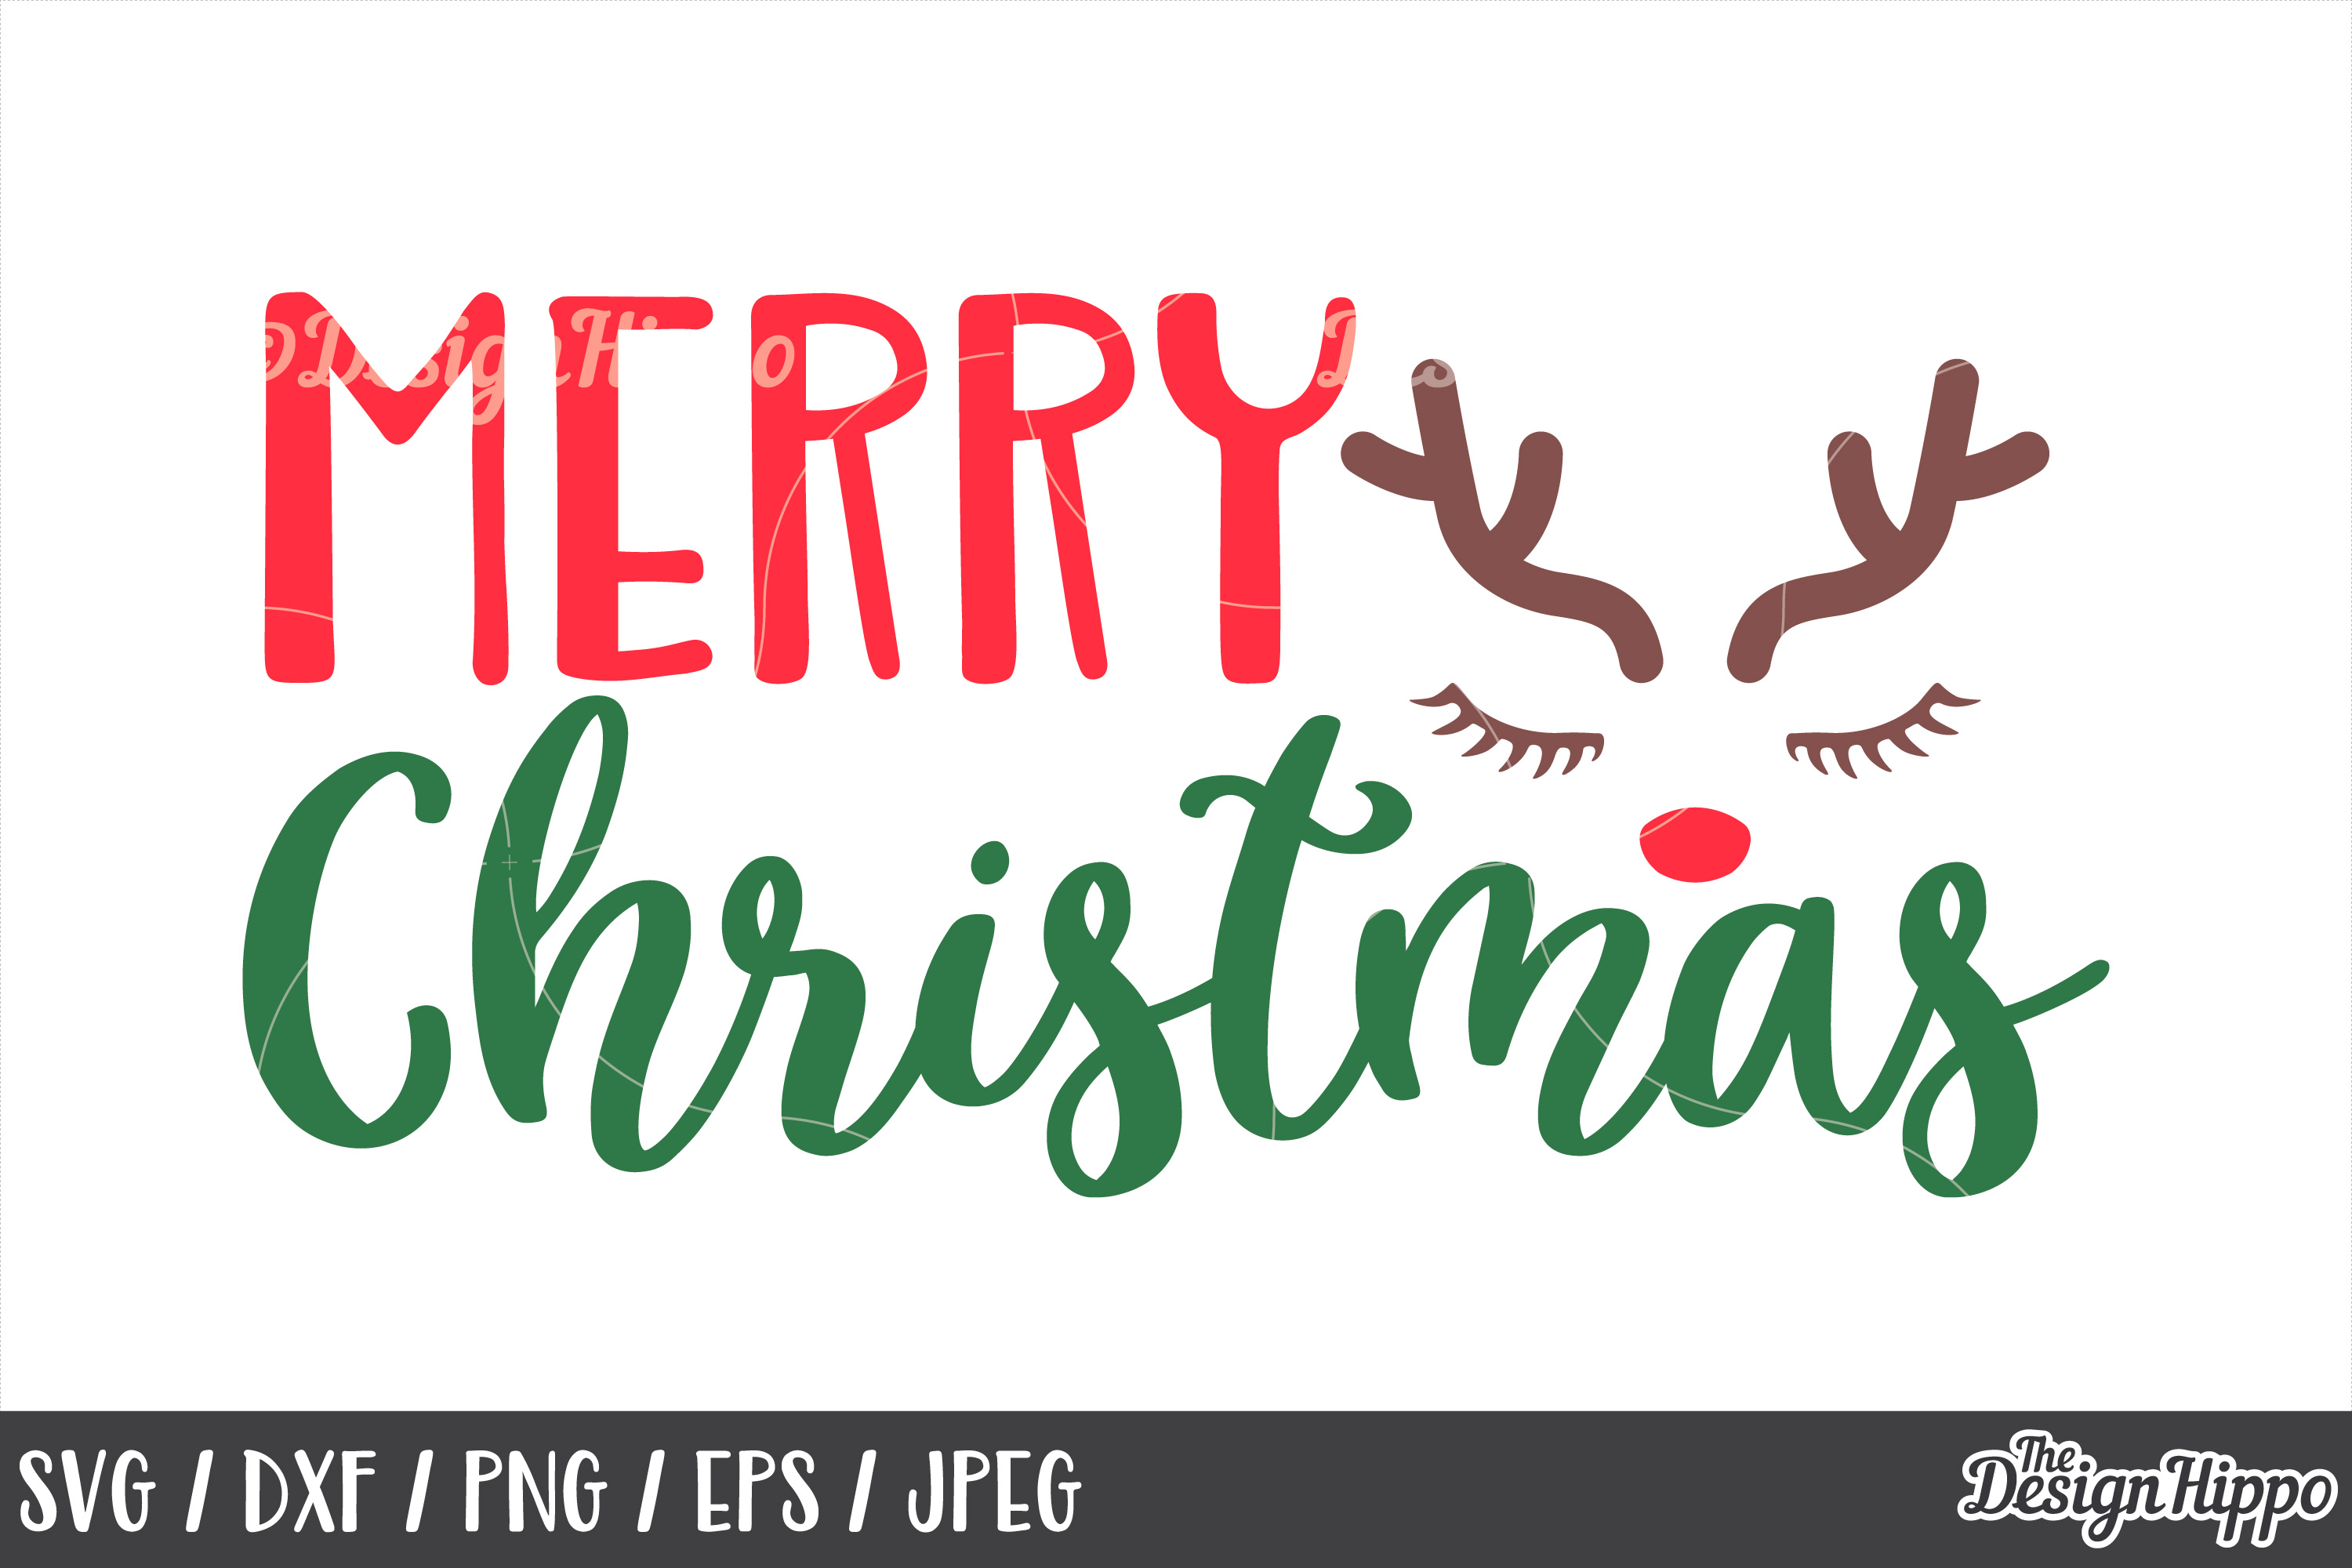 Merry Christmas SVG Bundle, Christmas SVG, PNG, DXF Cut File example image 2